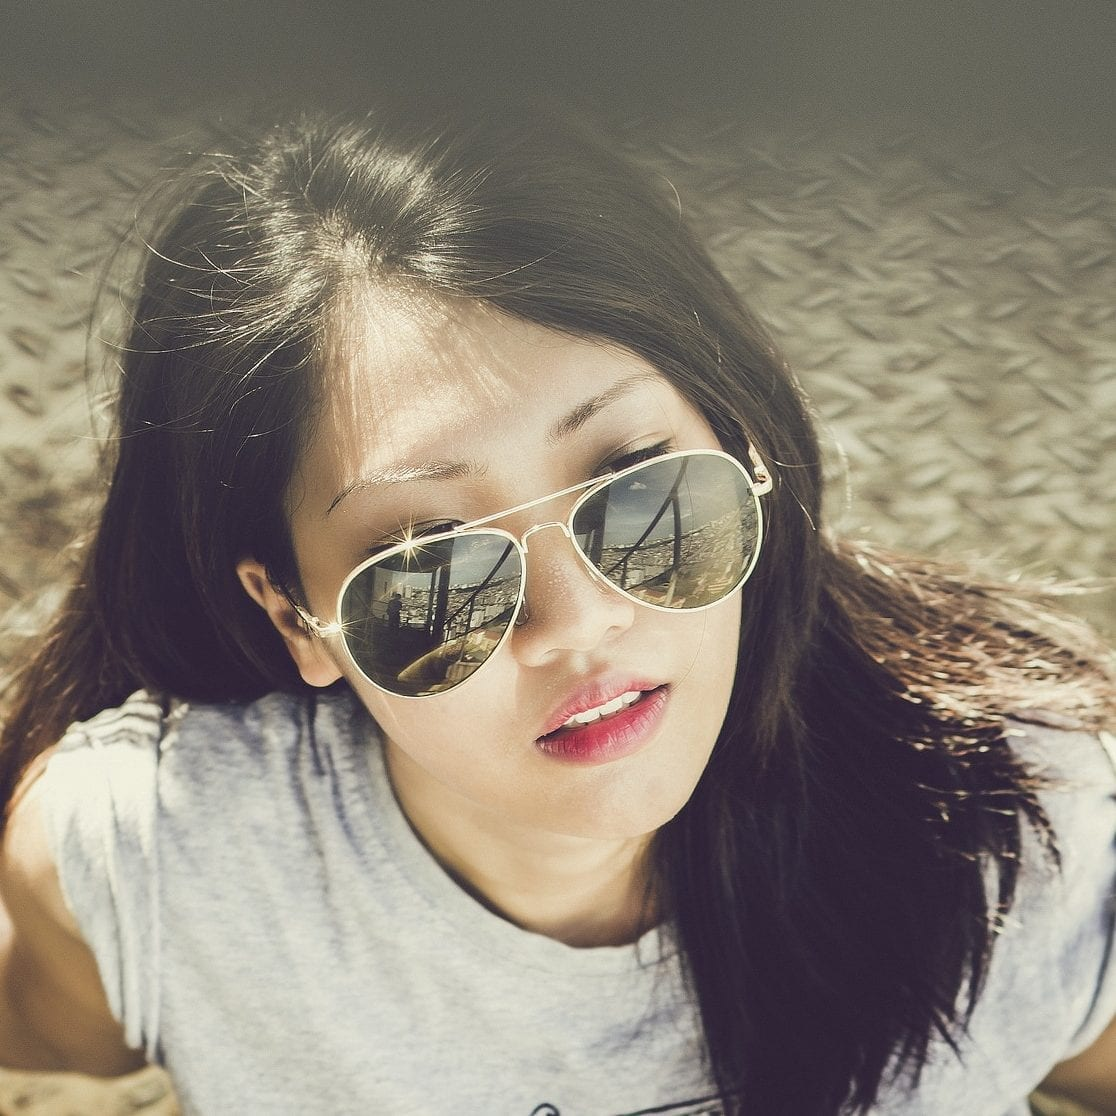 Image of beautiful asian woman in sunglasses for korean beauty or k-beauty blog post